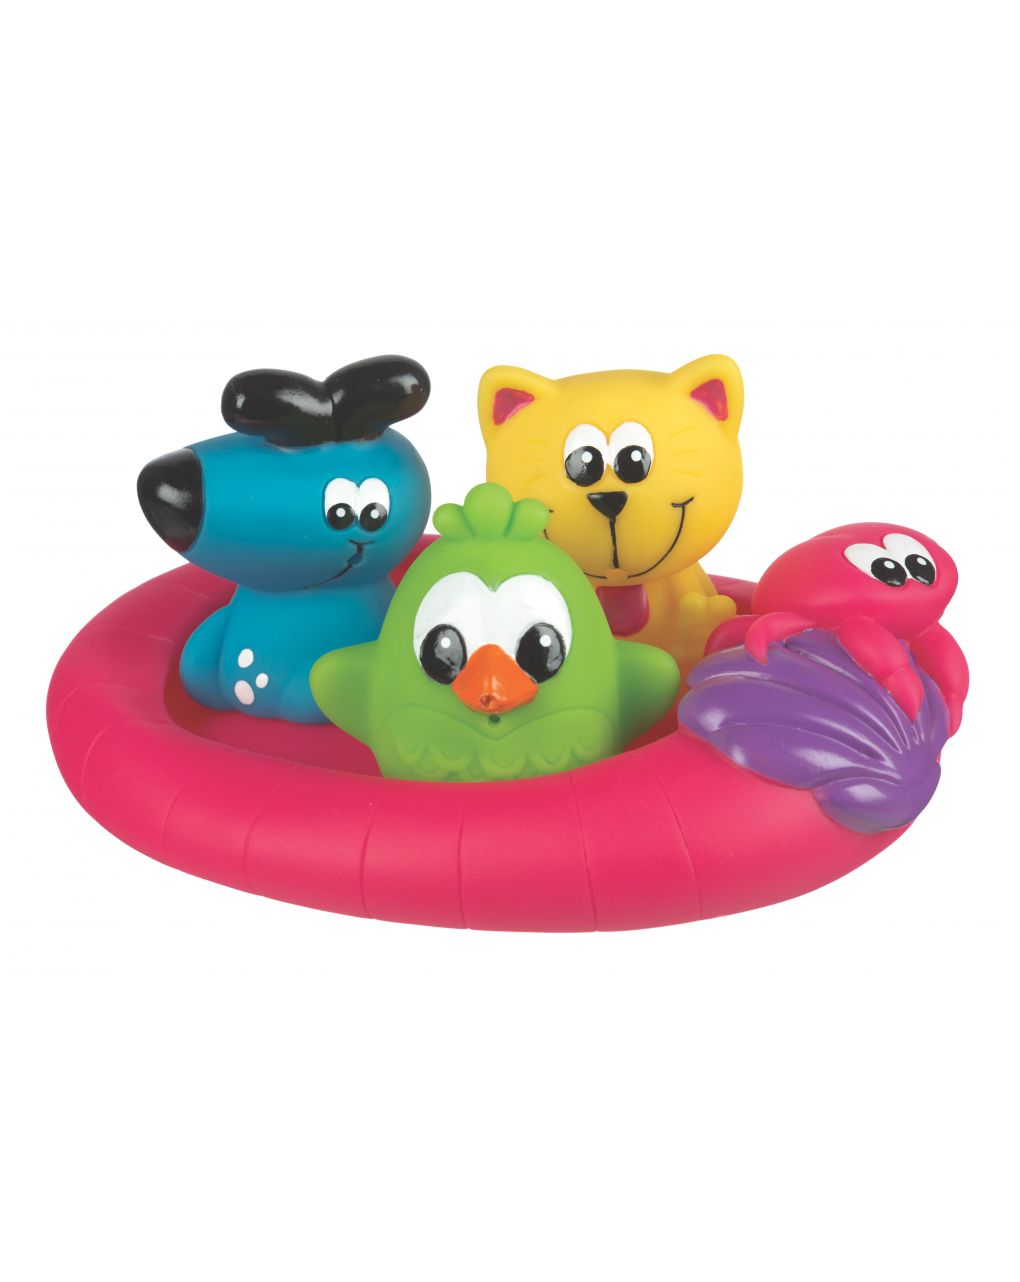 Playgro - splash and float friends - fully sealed - Playgro